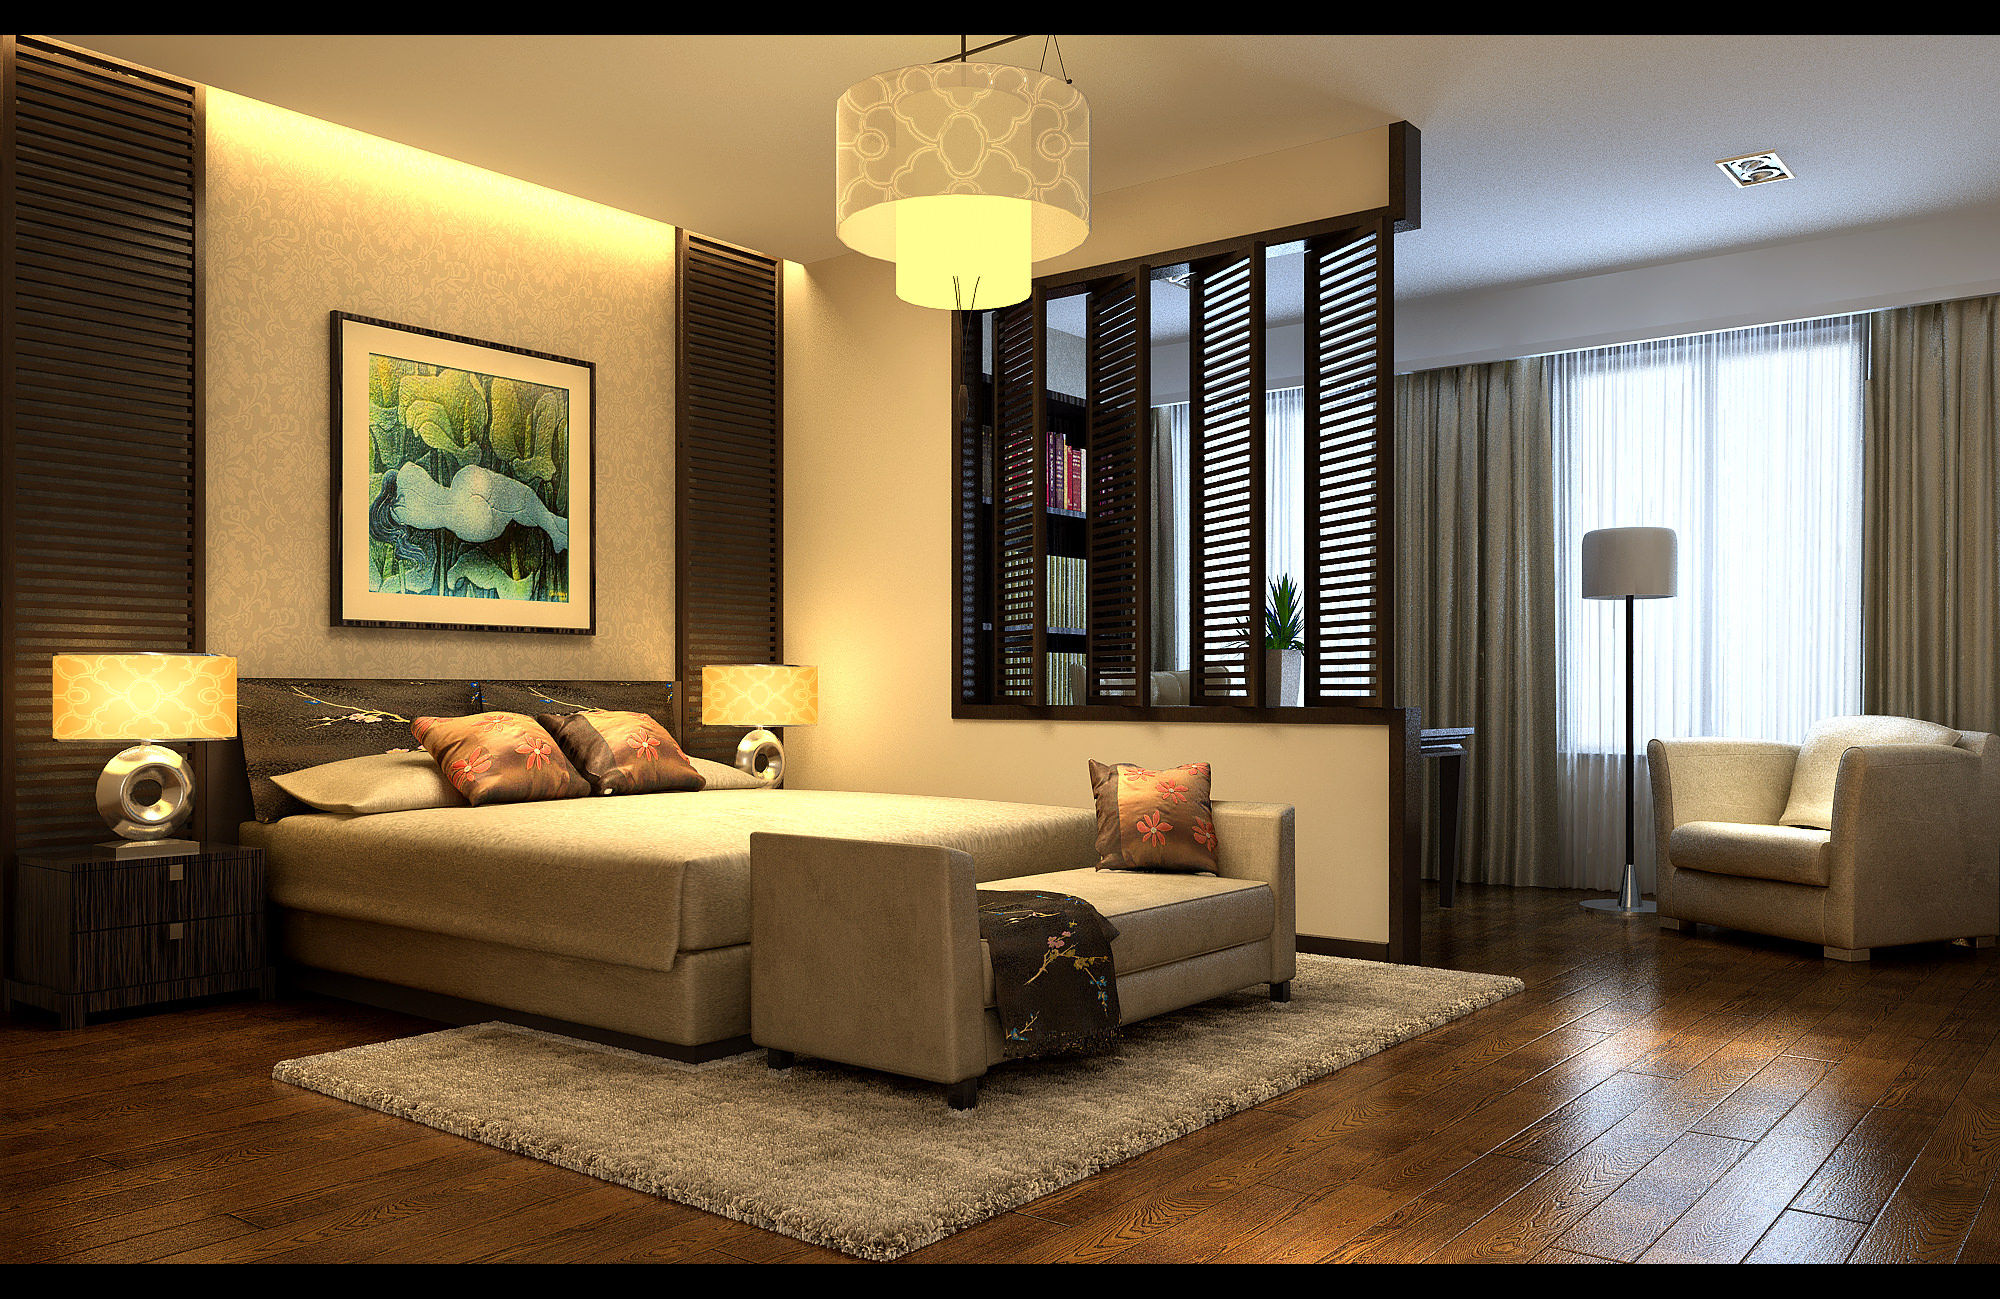 Collection modern bedroom fully furnished 3d model for Model bedroom interior design